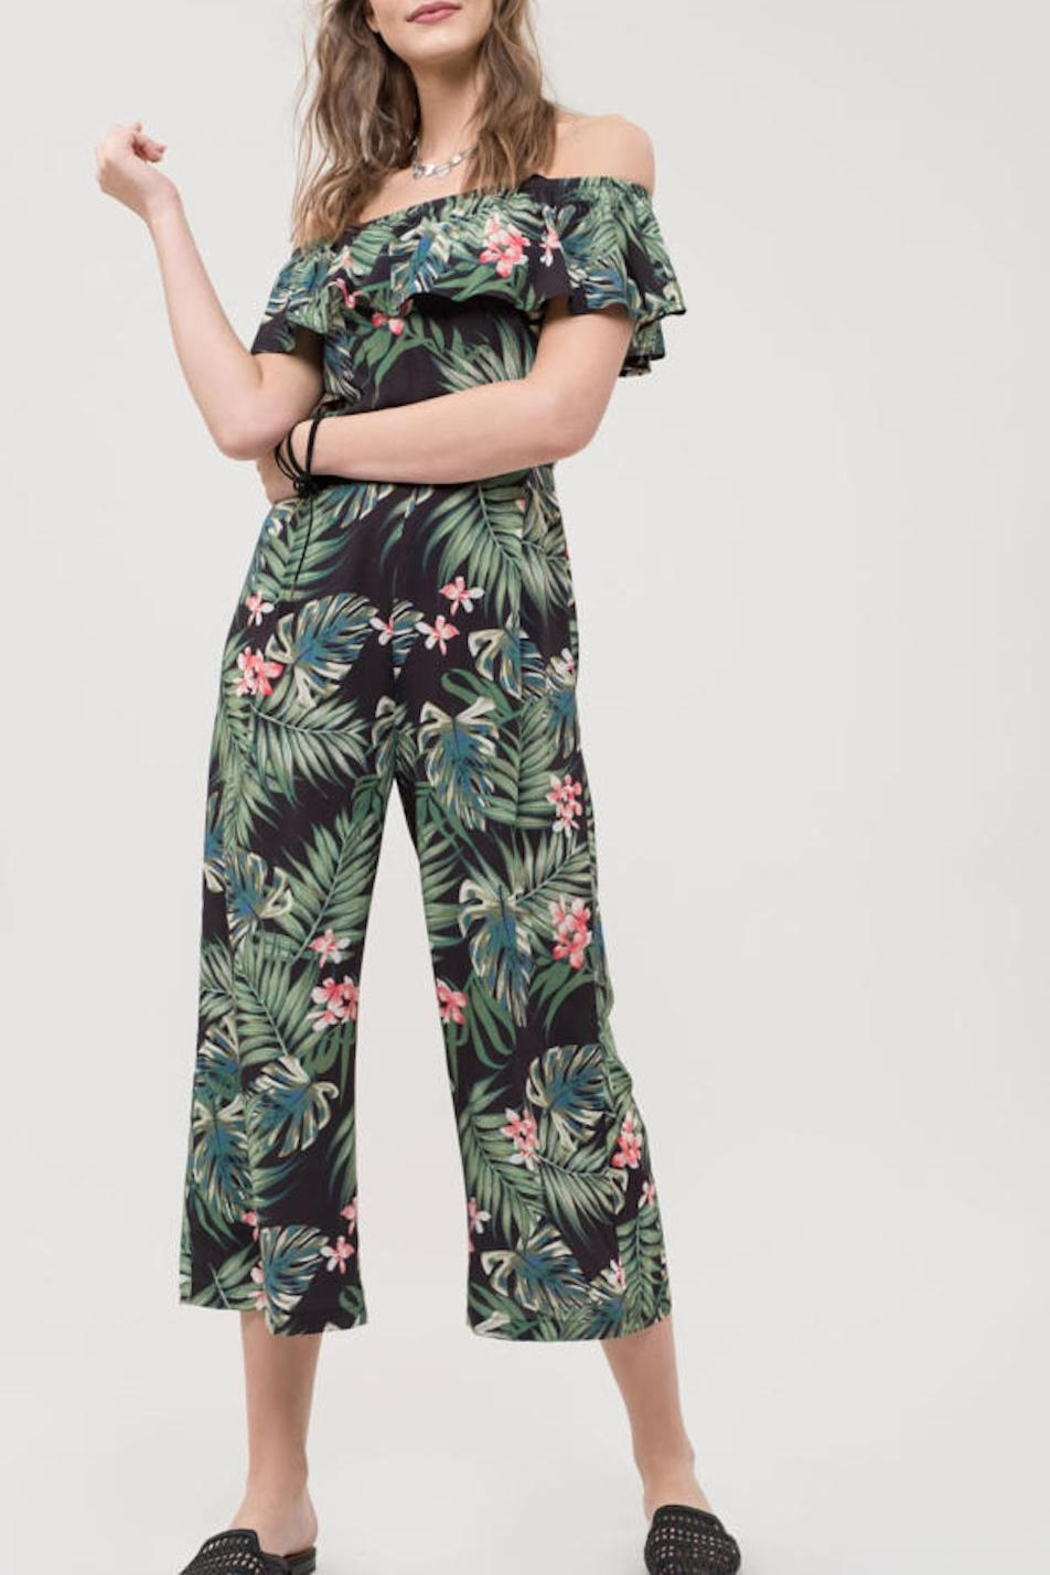 Blu Pepper Tropical Print Jumpsuit - Front Full Image